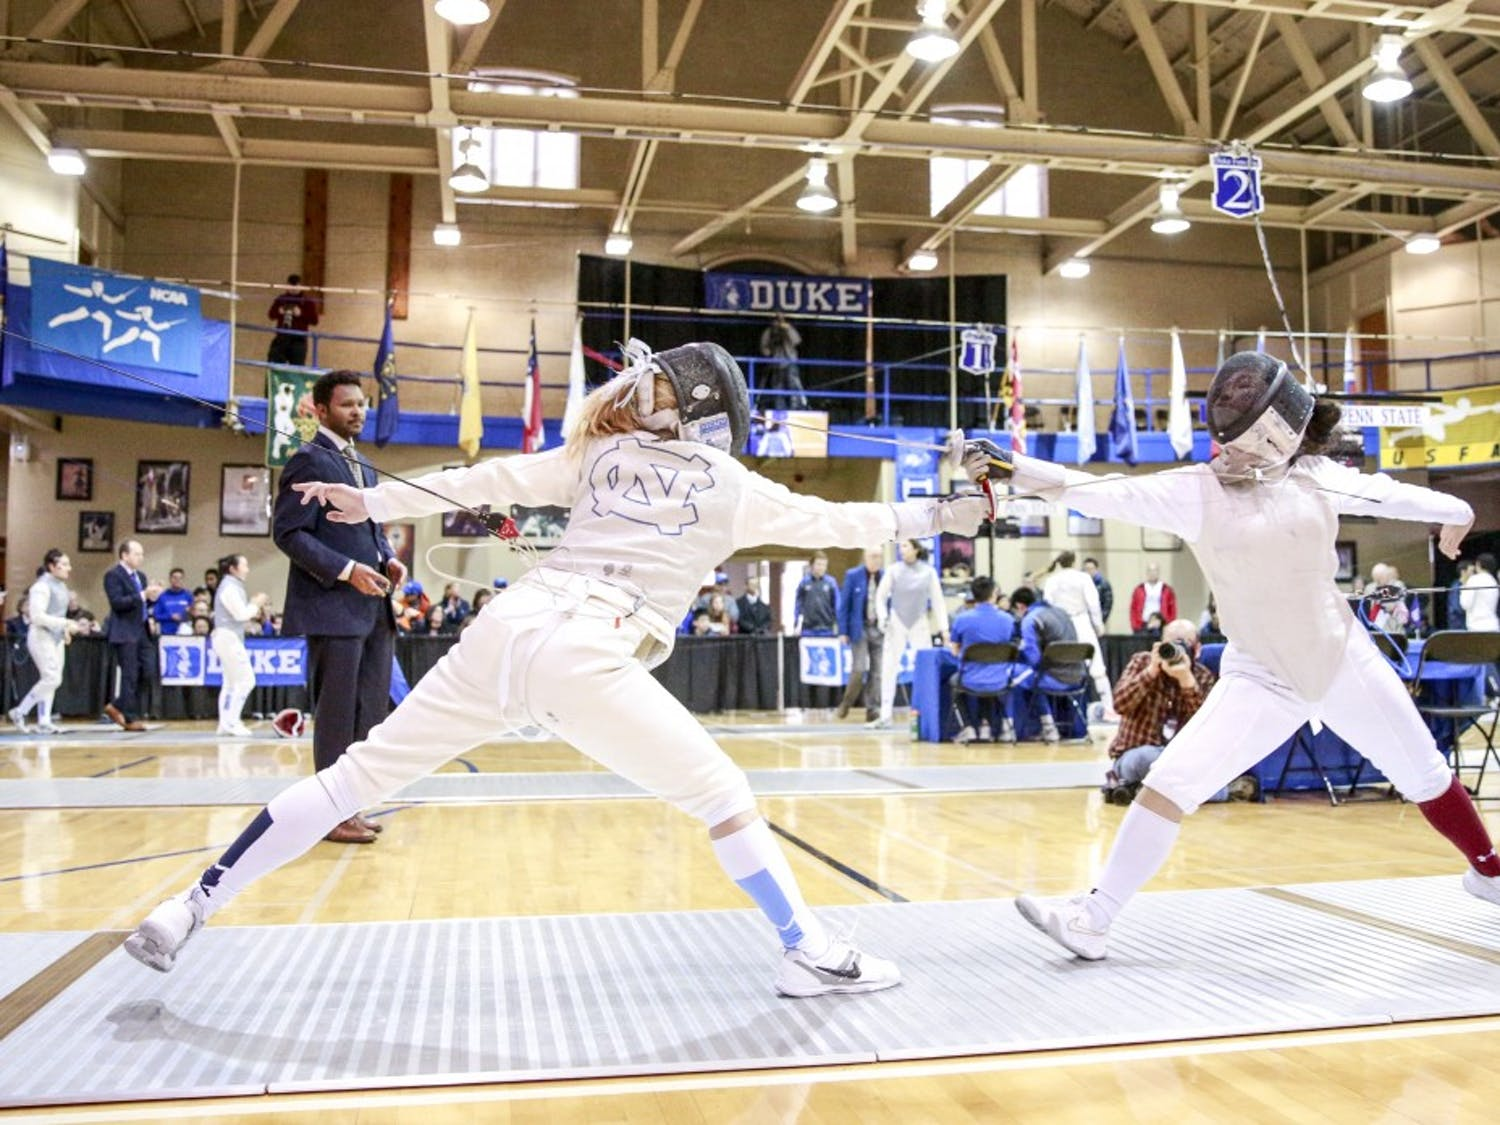 UNC's Sydney Persing fences with Boston College's Vivian Li during the women's fencing match in Card Gym at Duke University on Sunday, Feb. 10, 2018.